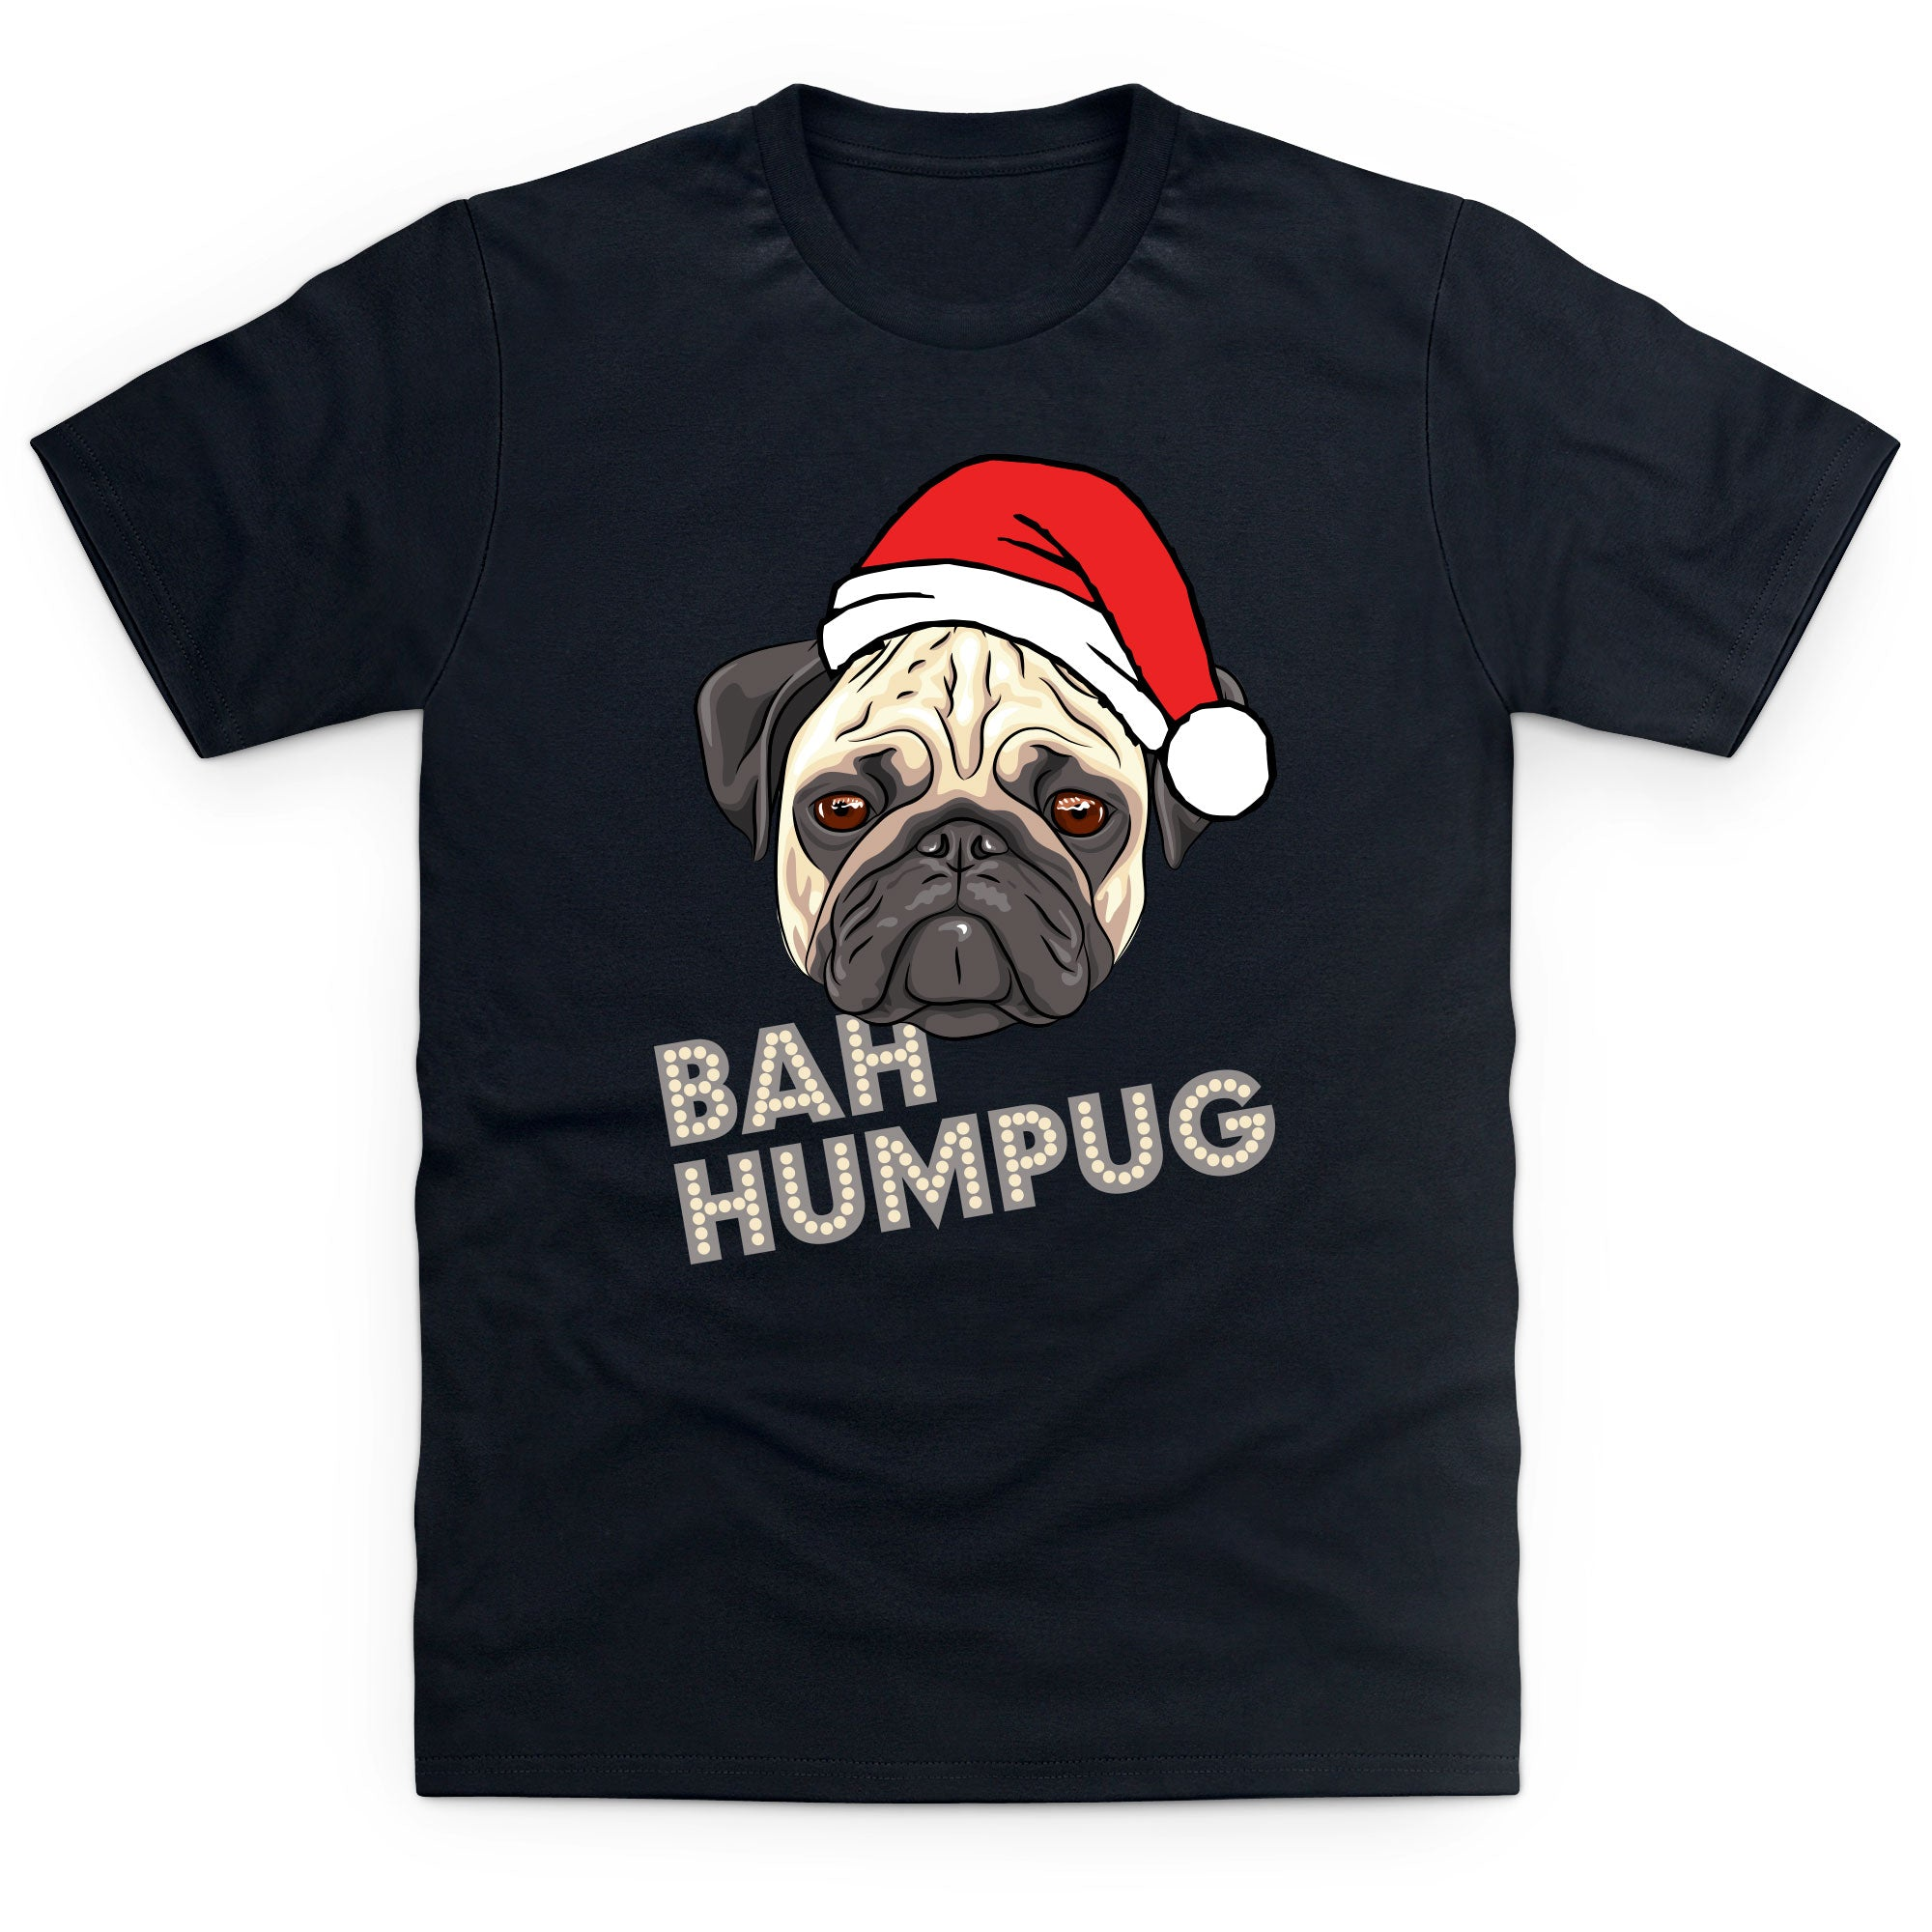 CHEAP Bah Humpug Kid's T Shirt 28028844293 – Clothing Accessories